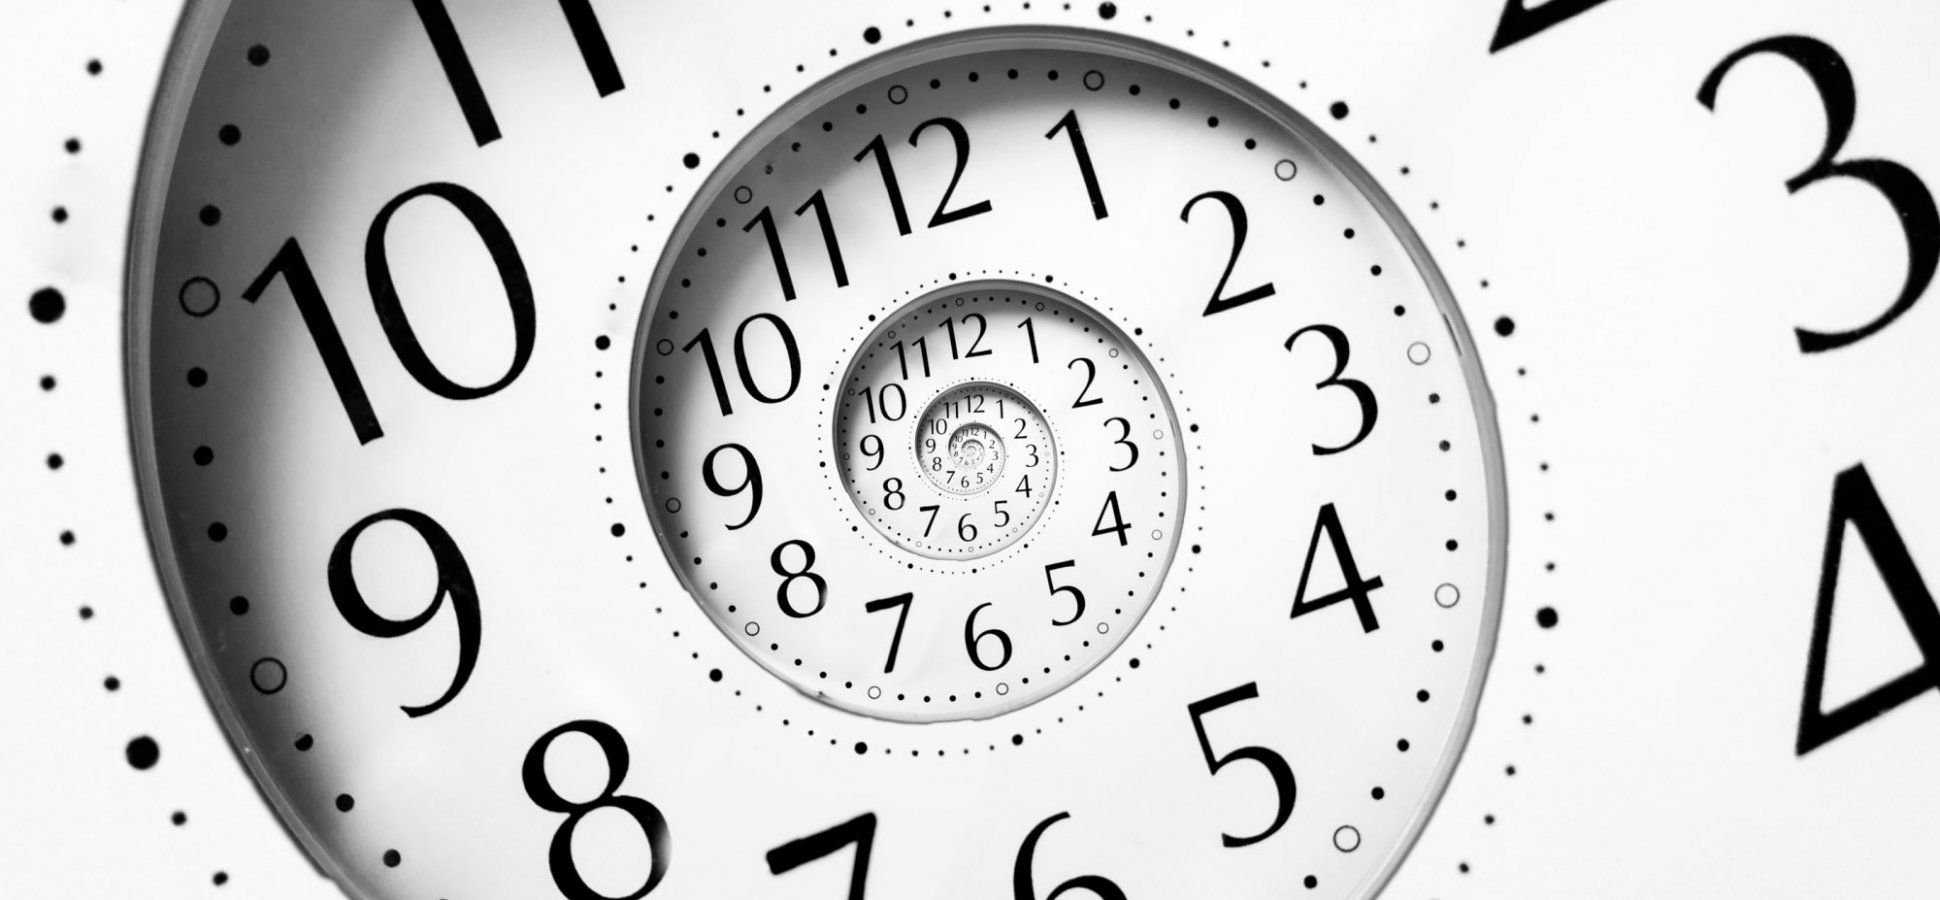 5 Steps Guaranteed to Make the Most of Your Time